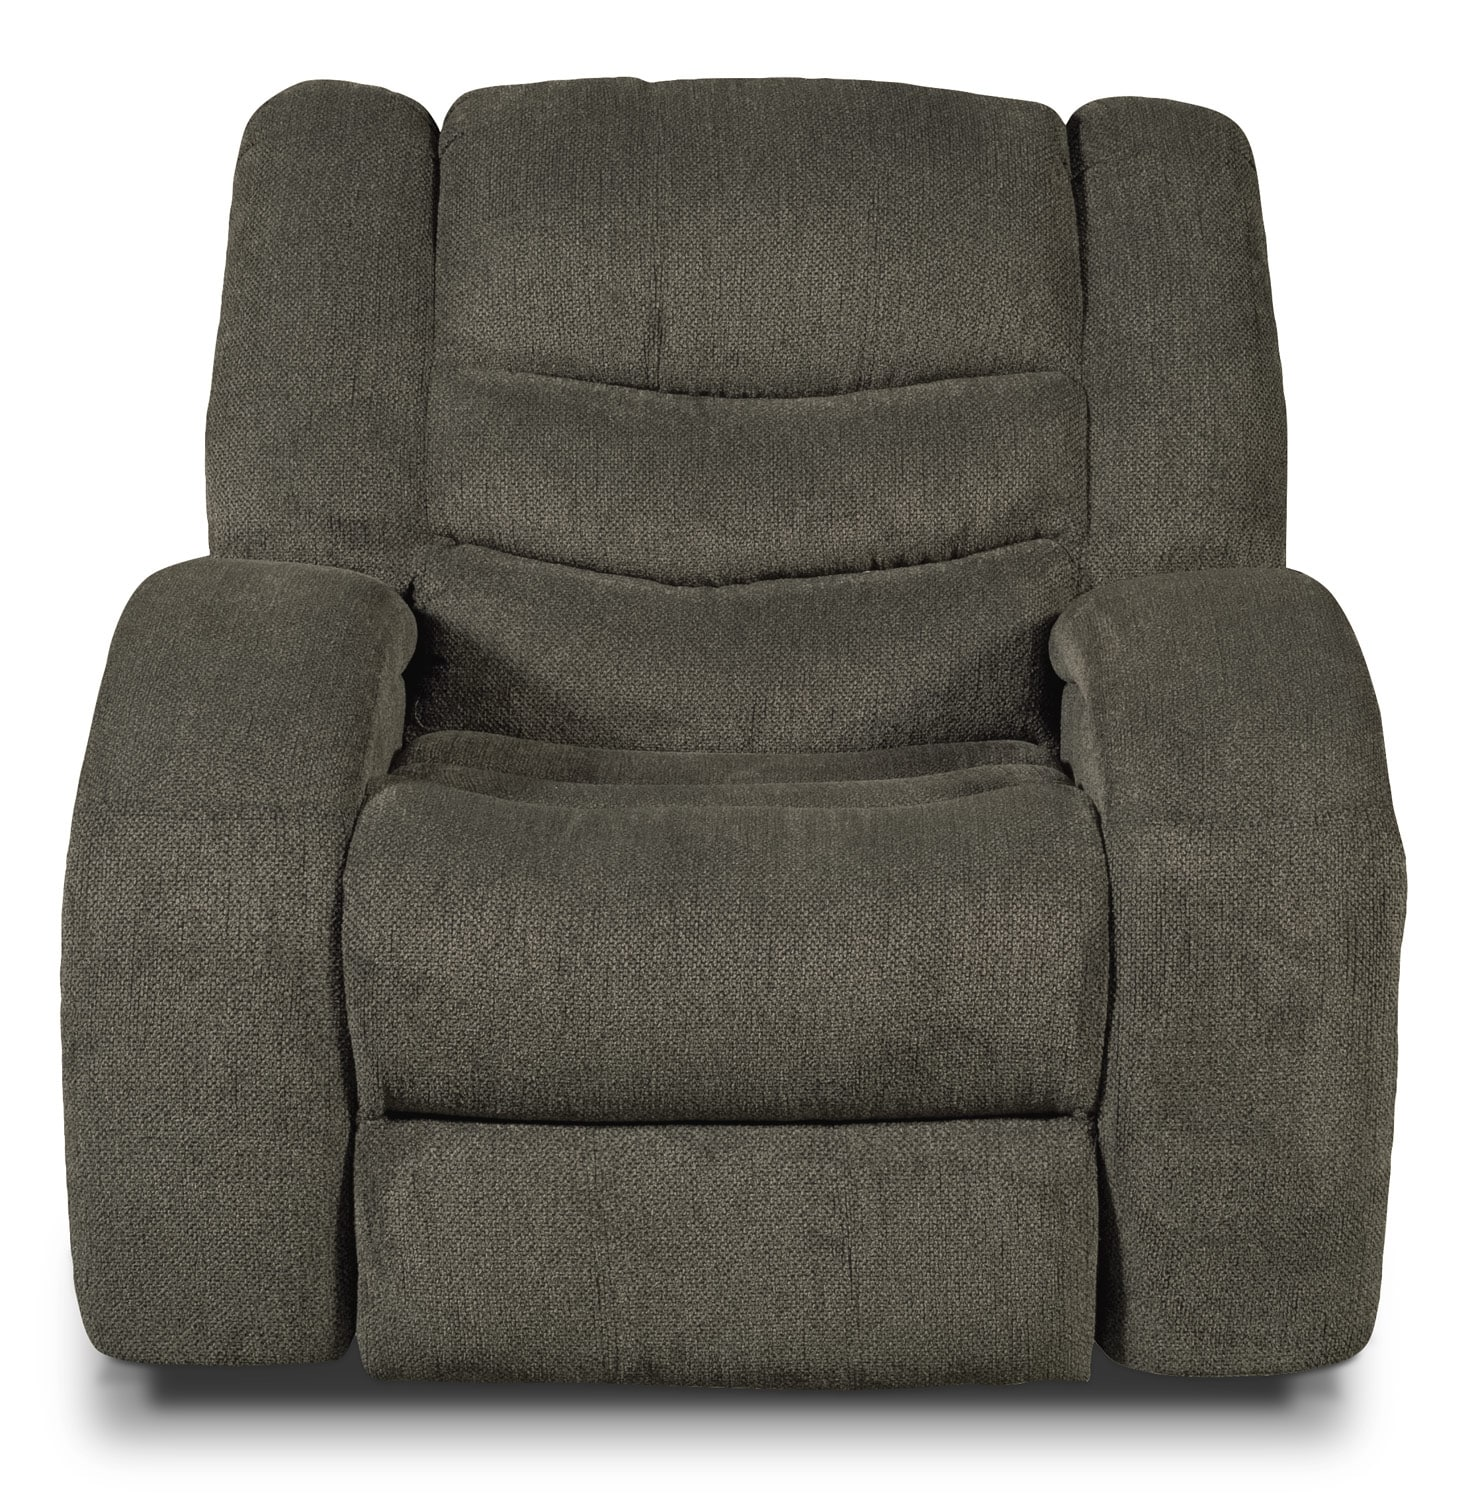 Living Room Furniture - Angus Chenille Power Reclining Chair - Brown